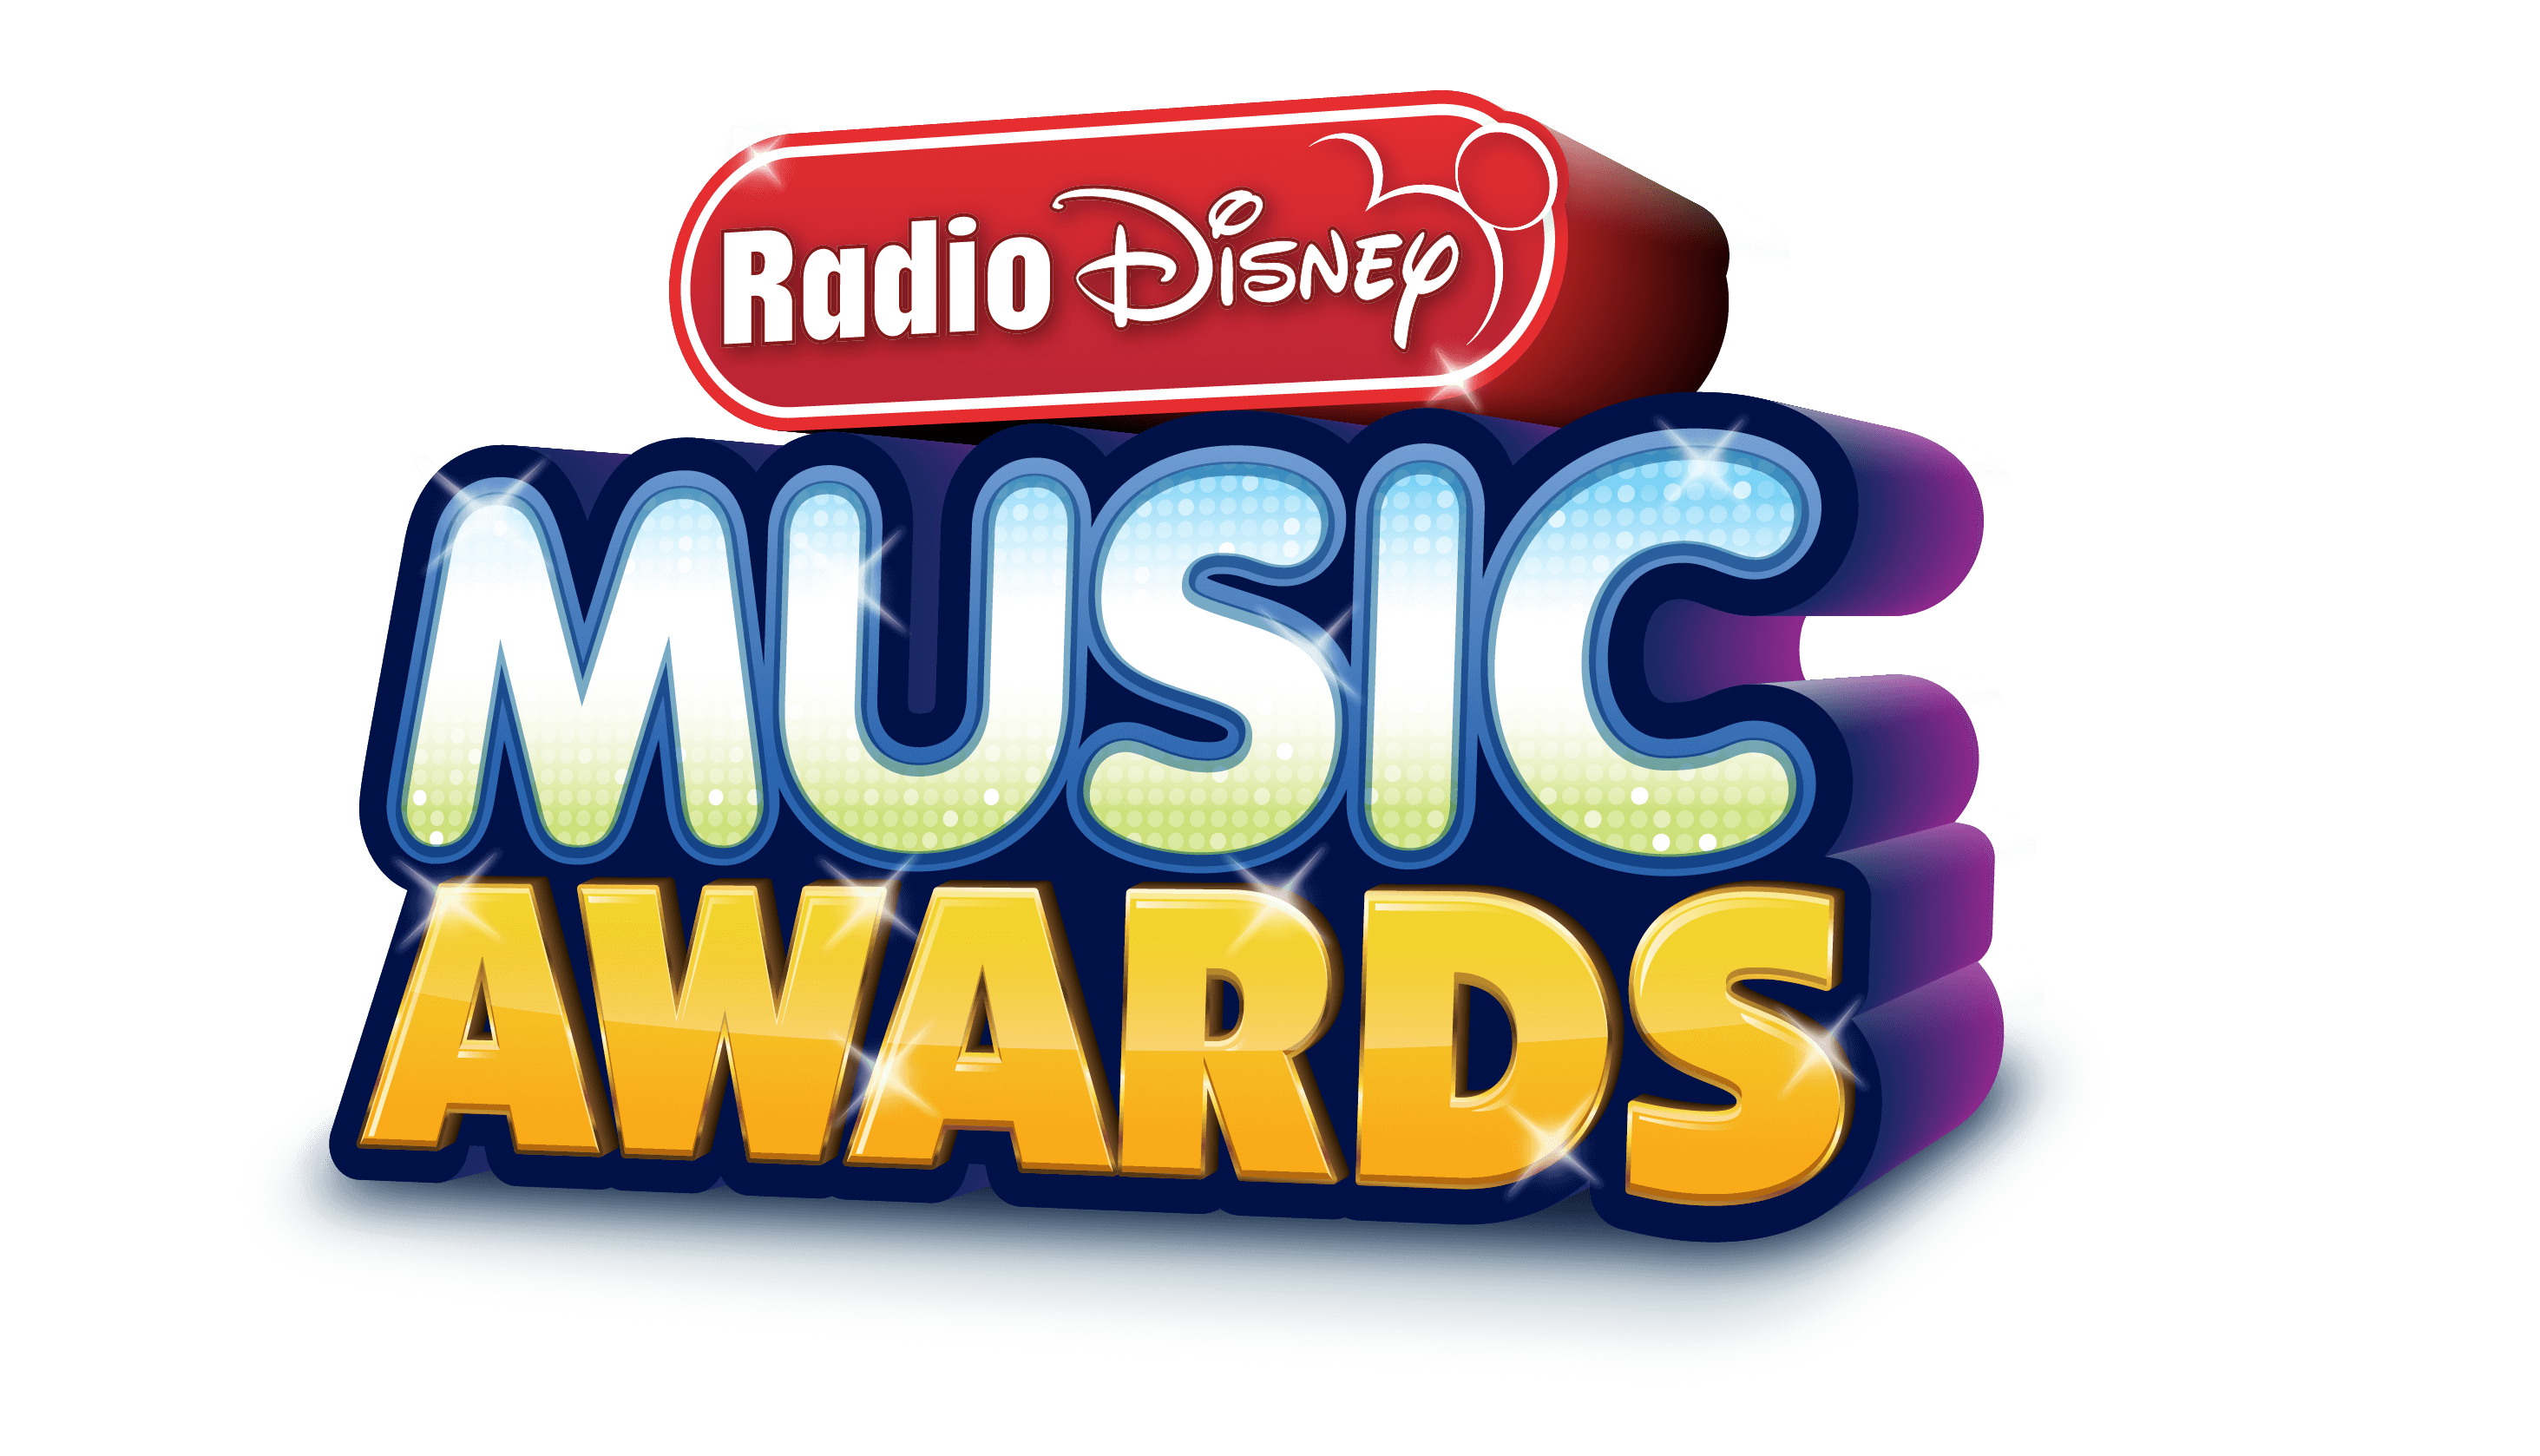 Disney Music Awards